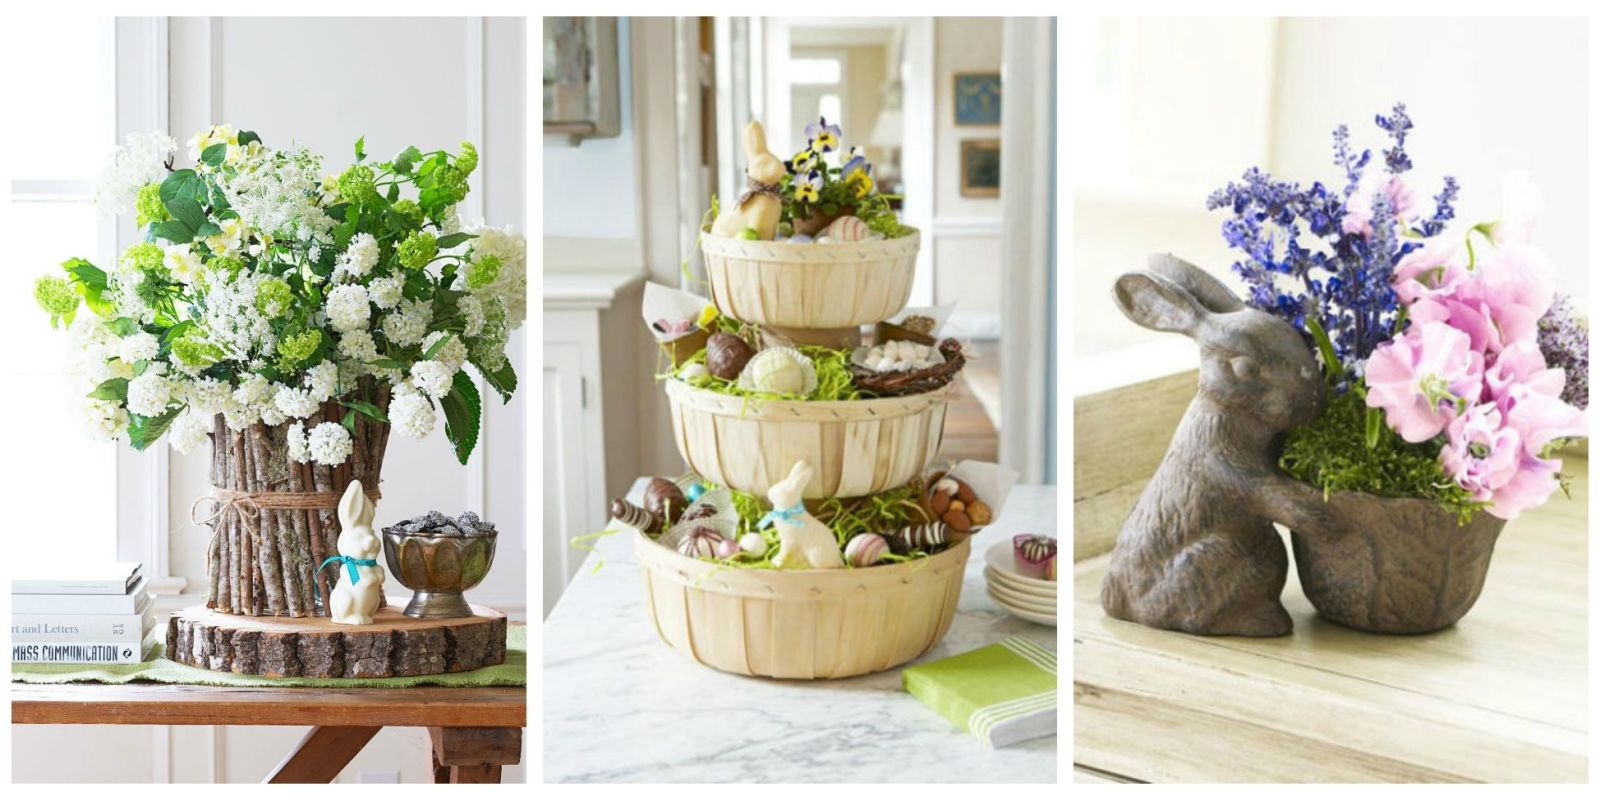 70 diy easter decorations ideas for homemade easter for Easter decorations ideas for the home